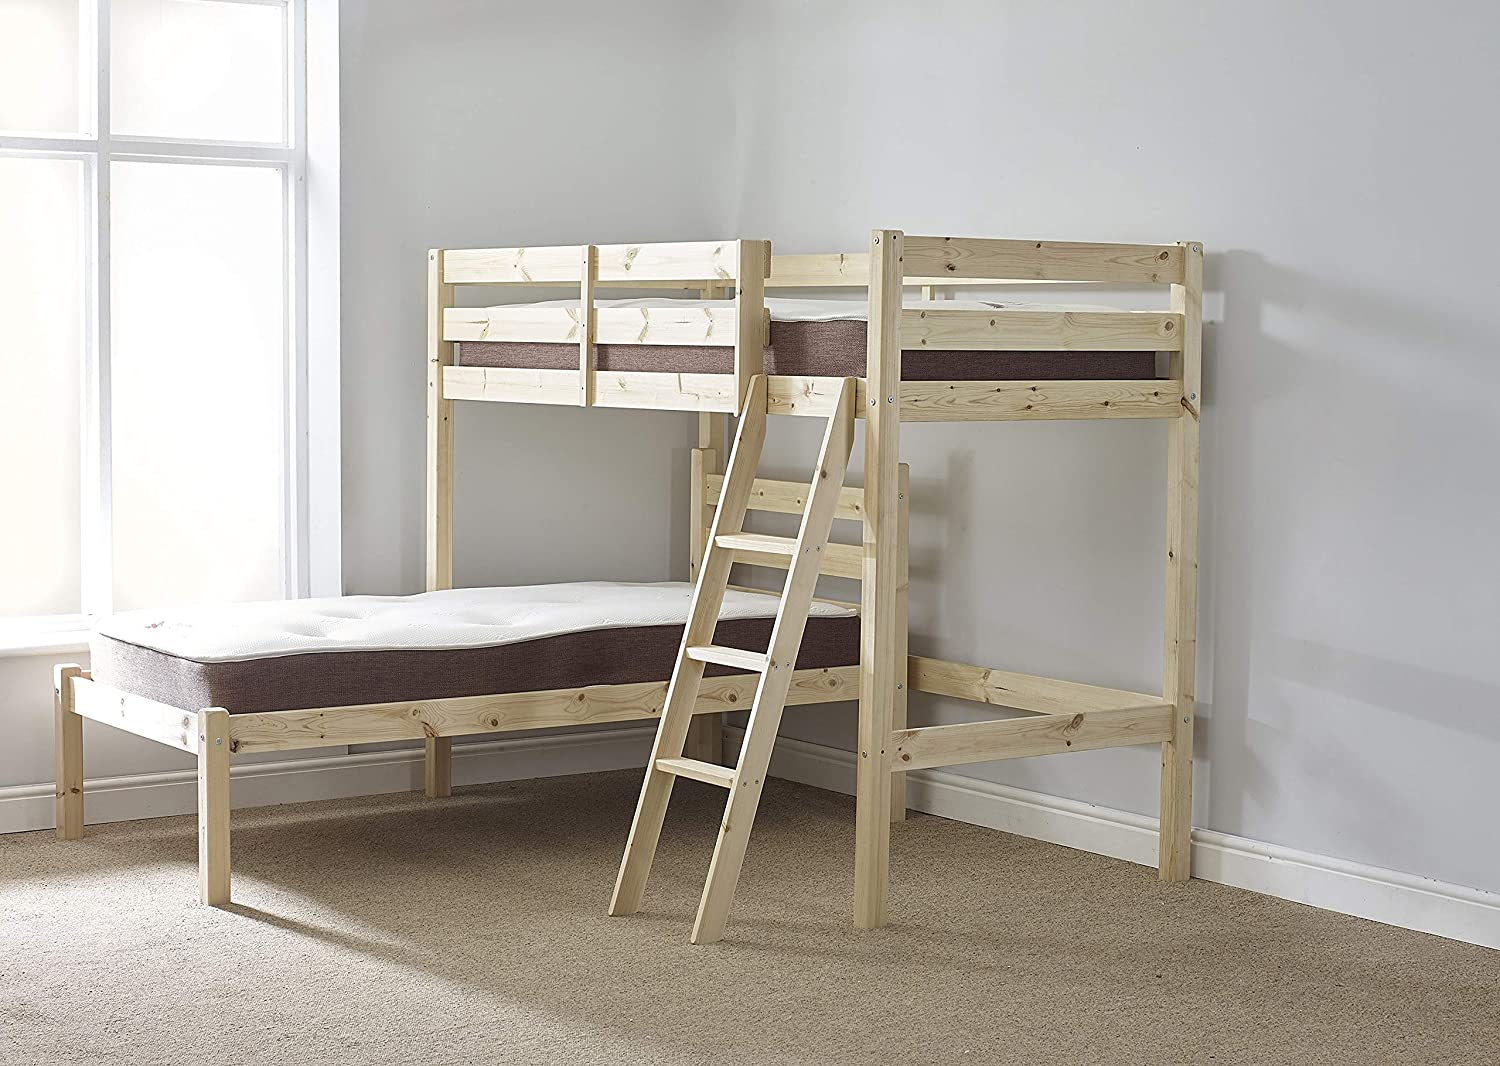 Strictly Beds and Bunks Low L Shaped Bunk Bed, 3ft Single